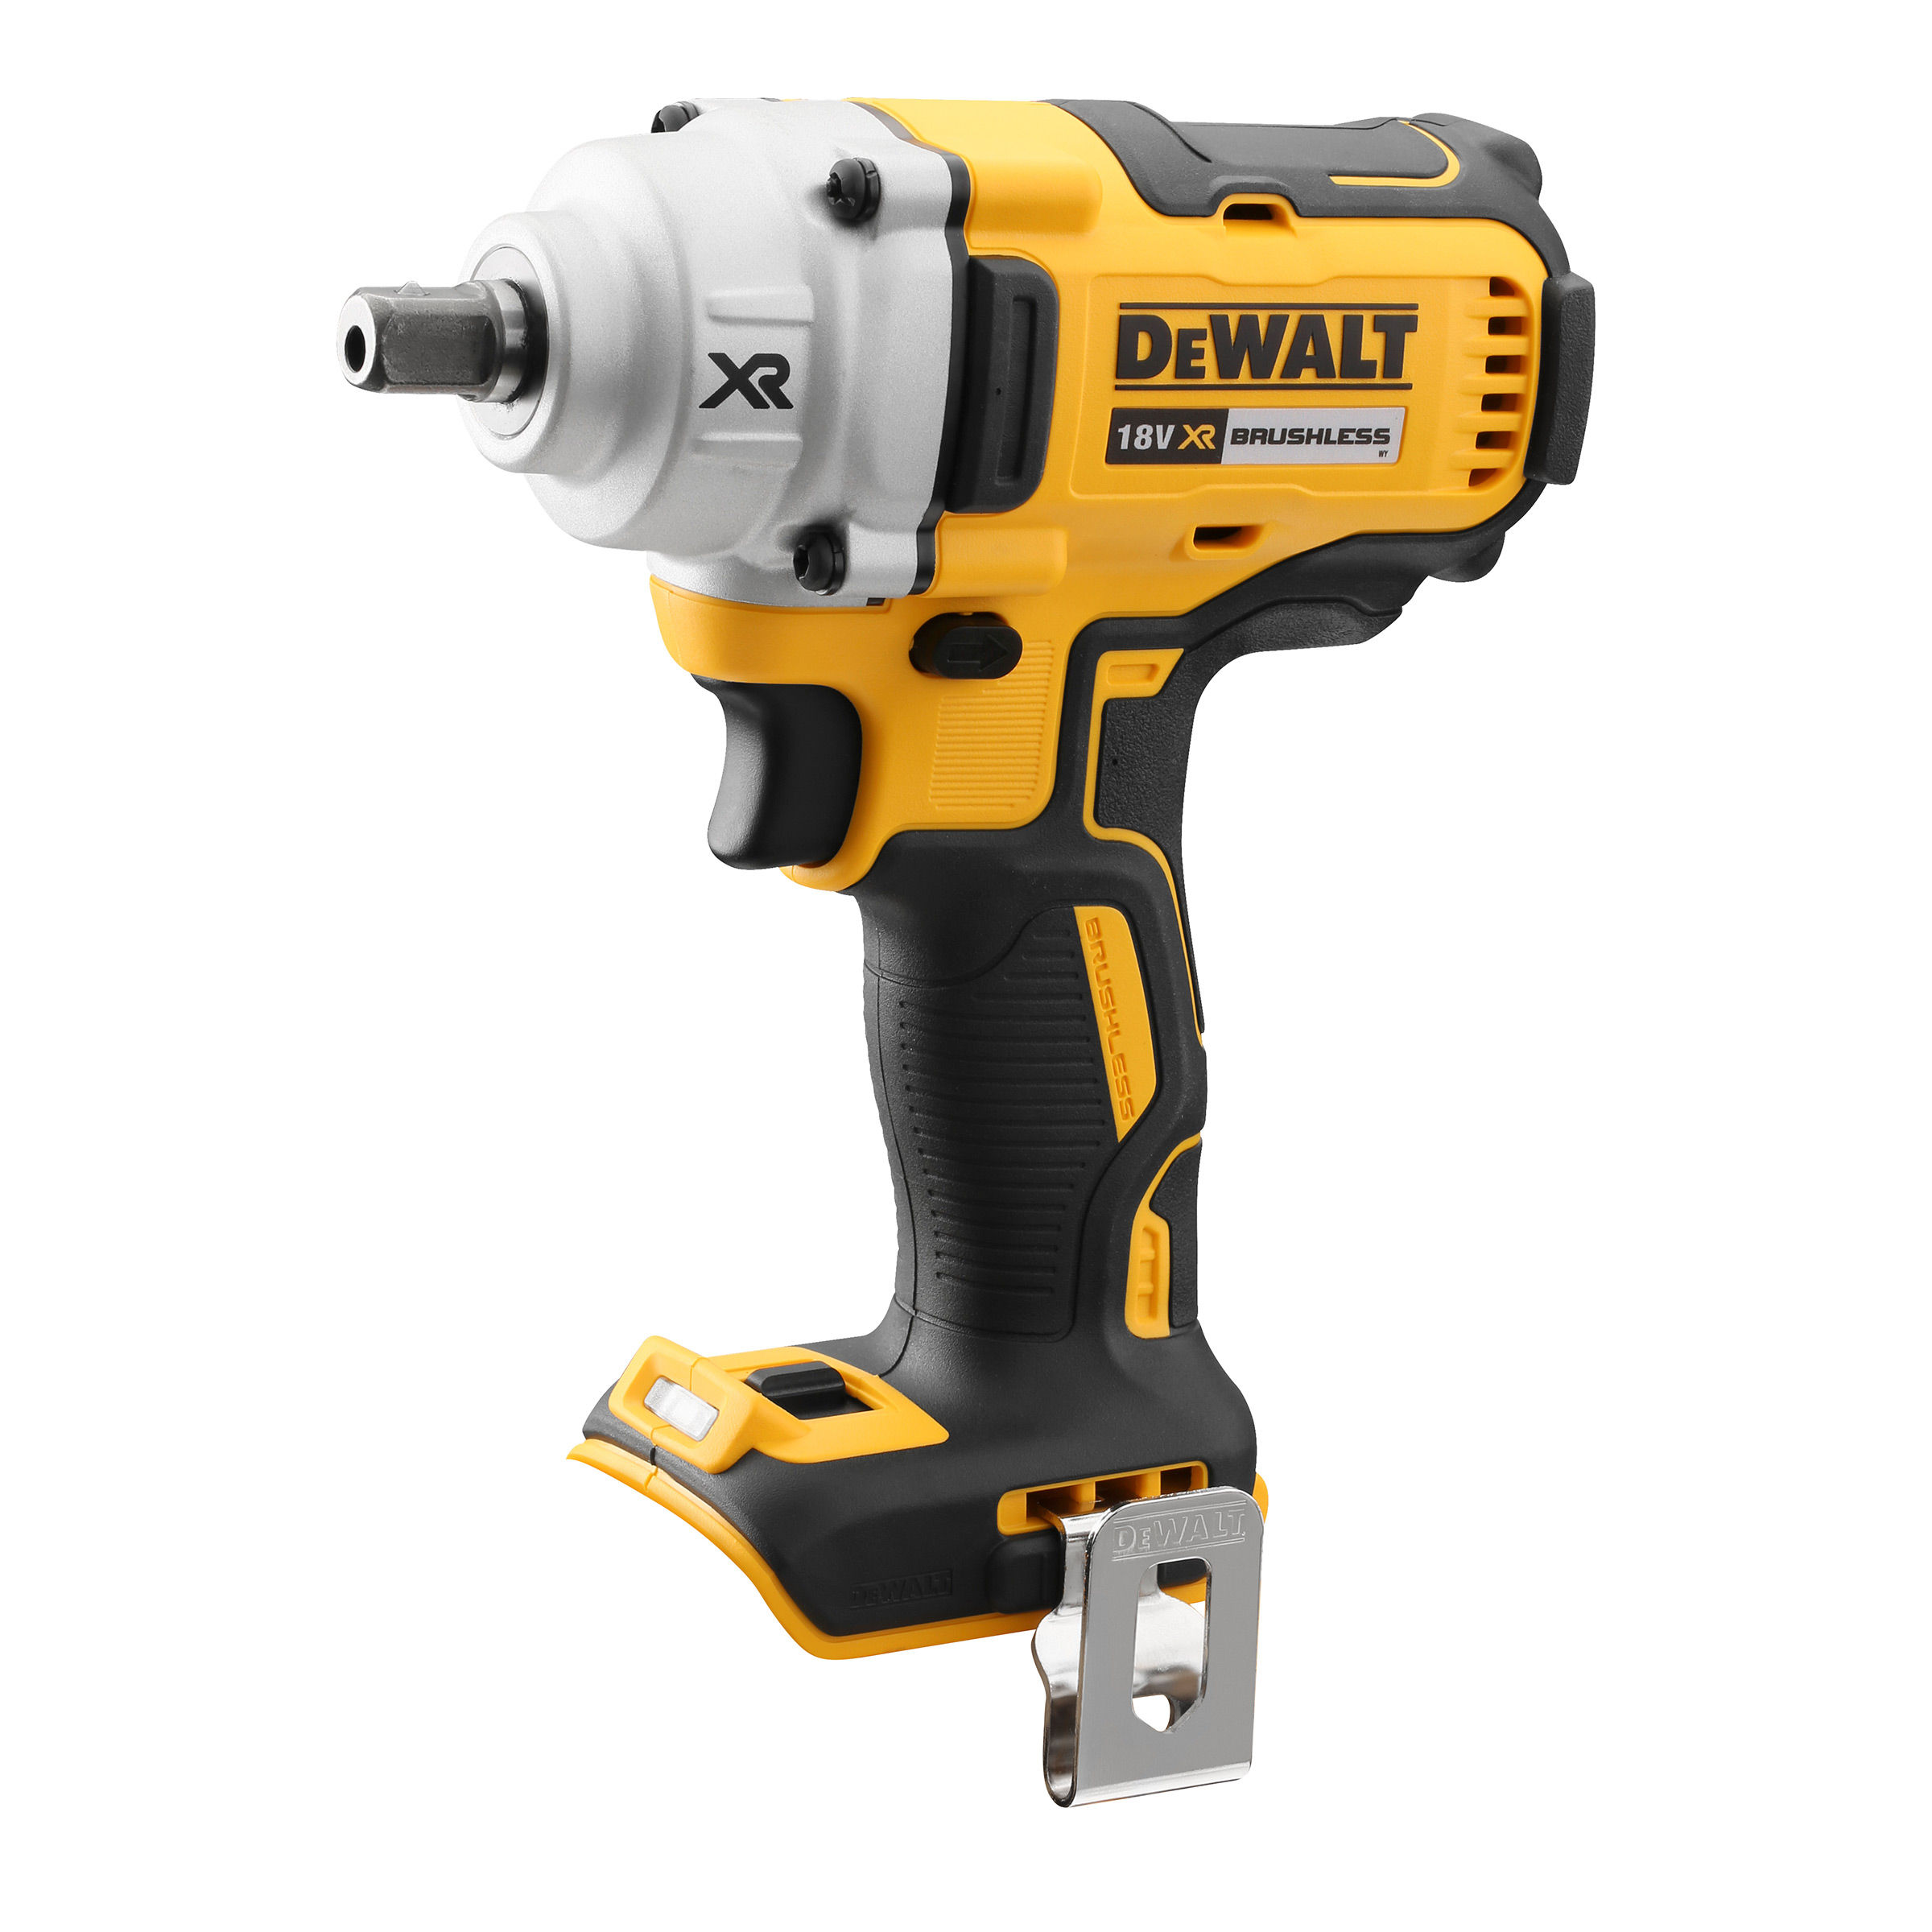 Dewalt Dcf894n Compact Impact Wrench High Torque 18v Cordless Brushless 1 2 Inch Drive